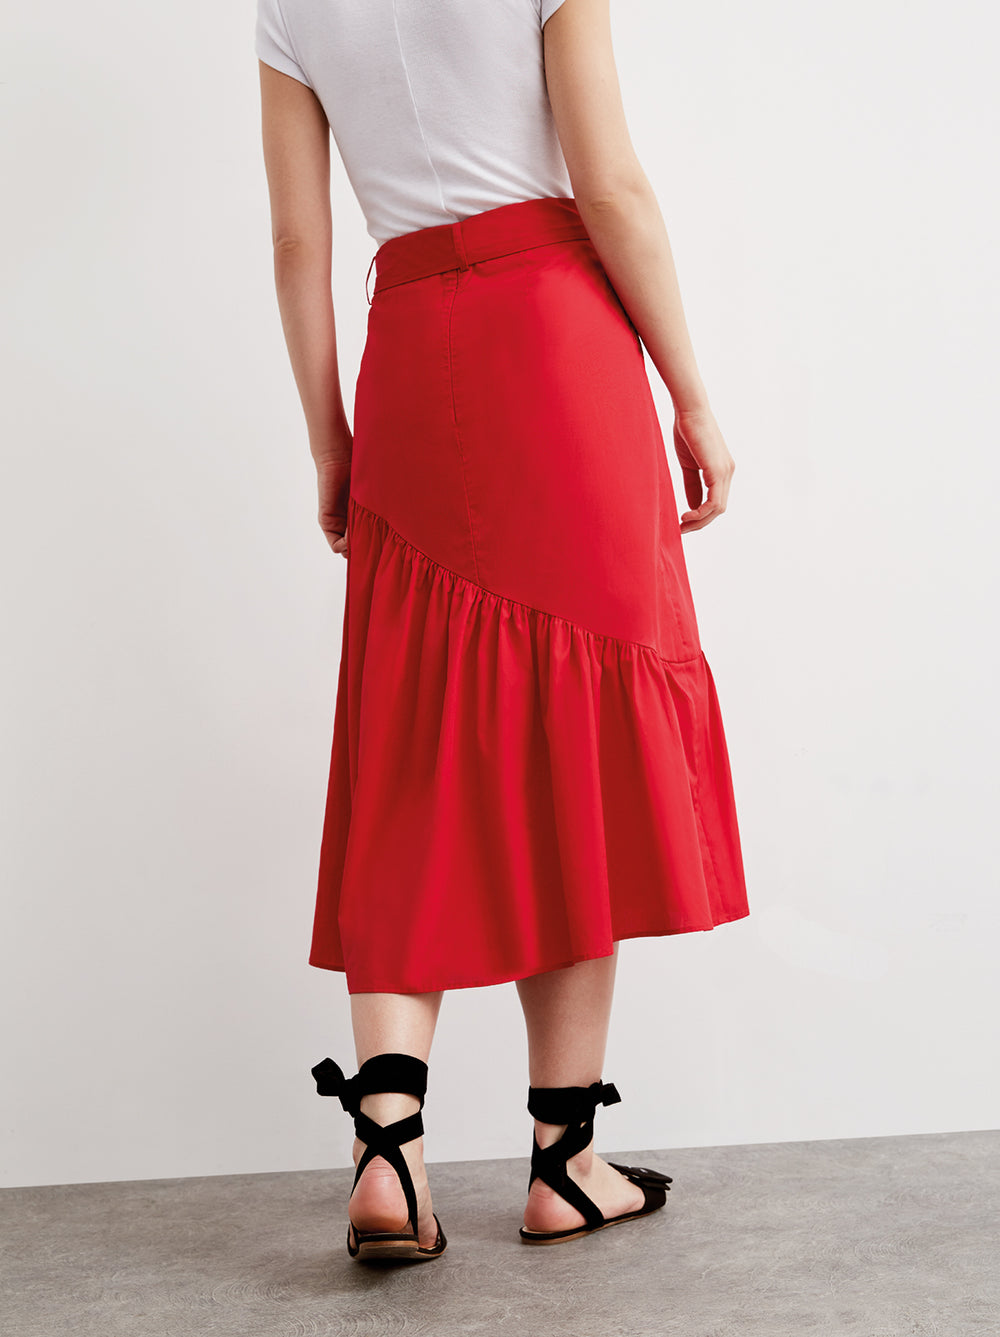 Isla Red Cotton Midi Skirt by KITRI Studio